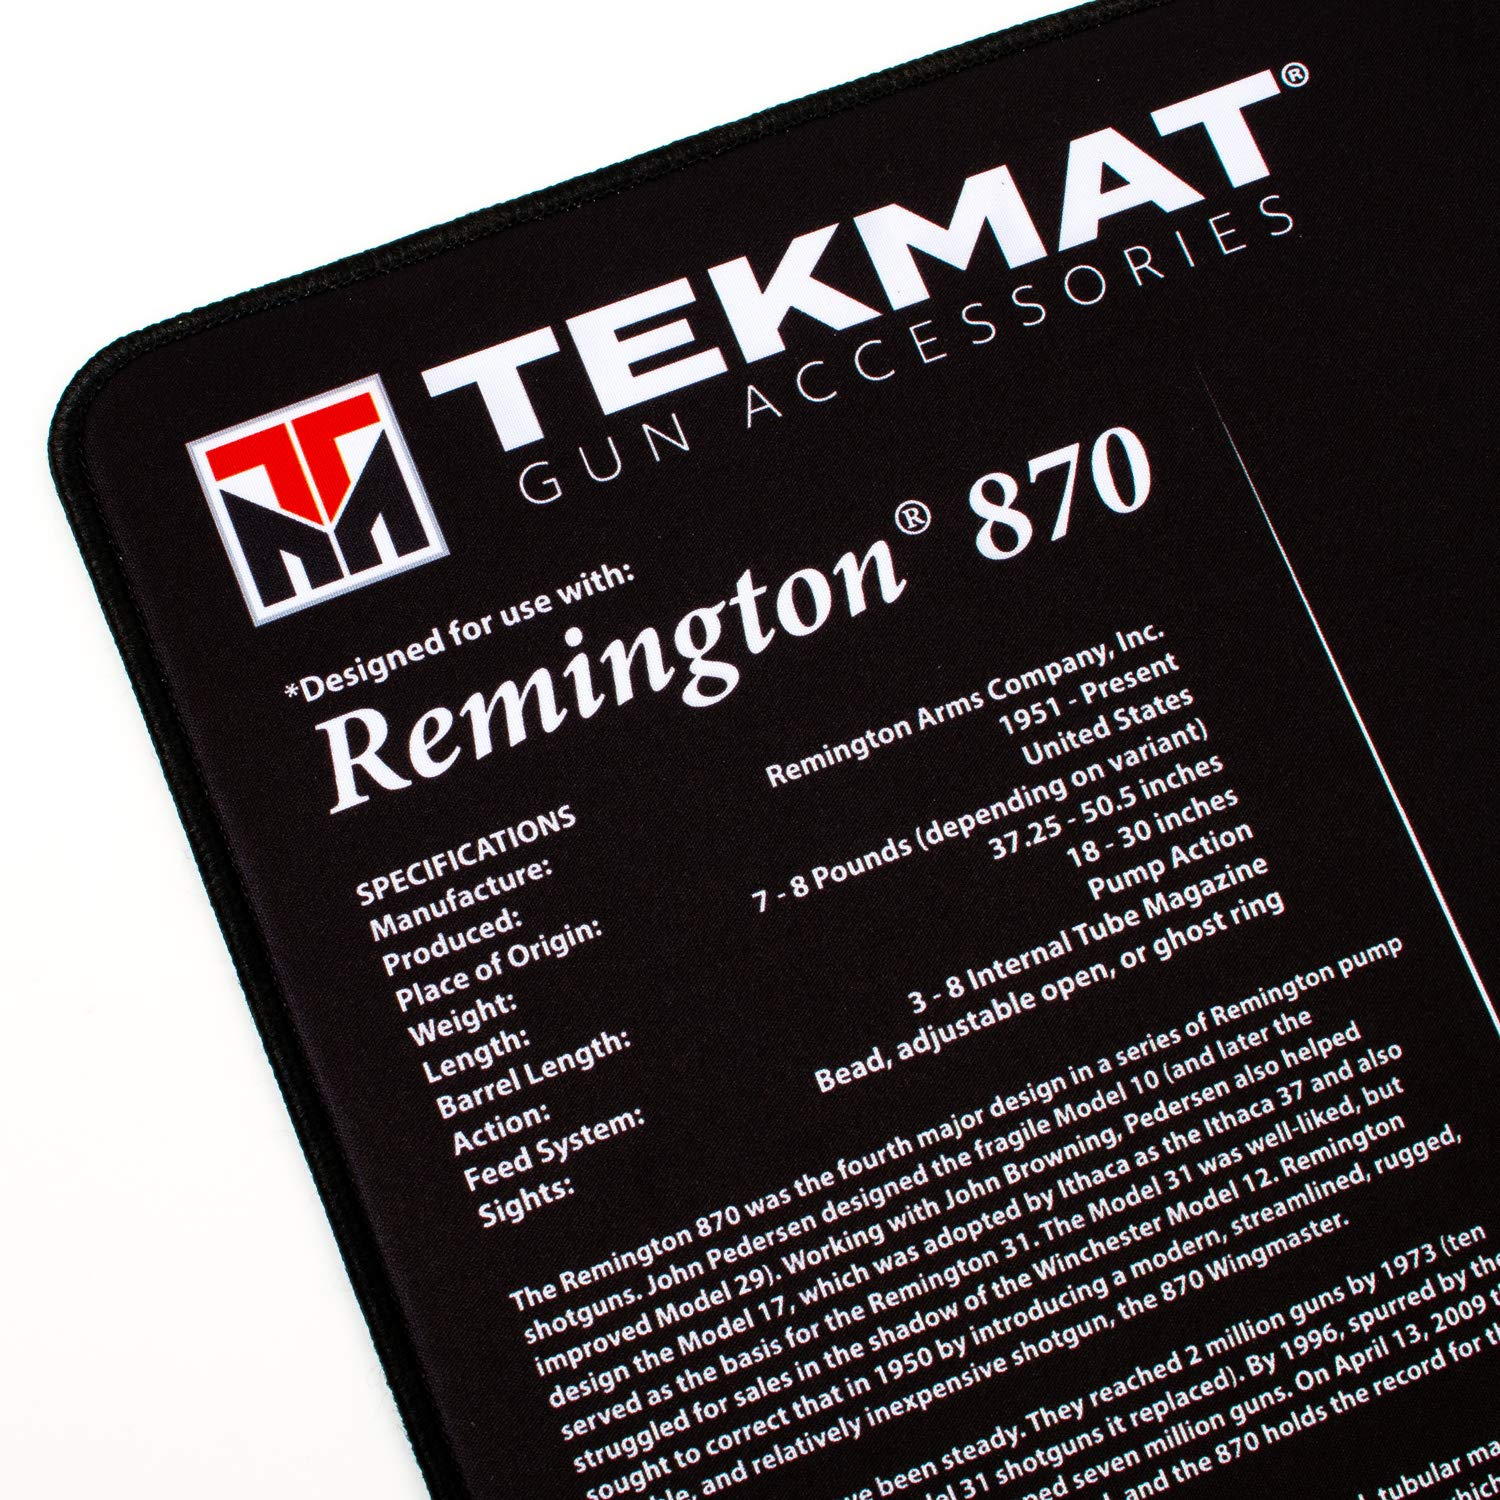 Tekmat Remington 870 Ultra Premium Gun Cleaning Mat Info Shotguns Remingtonshotguns Remington870 Remington870diagram 15 X 44 25 Thick Durable Water And Oil Resistant Rifle Bench